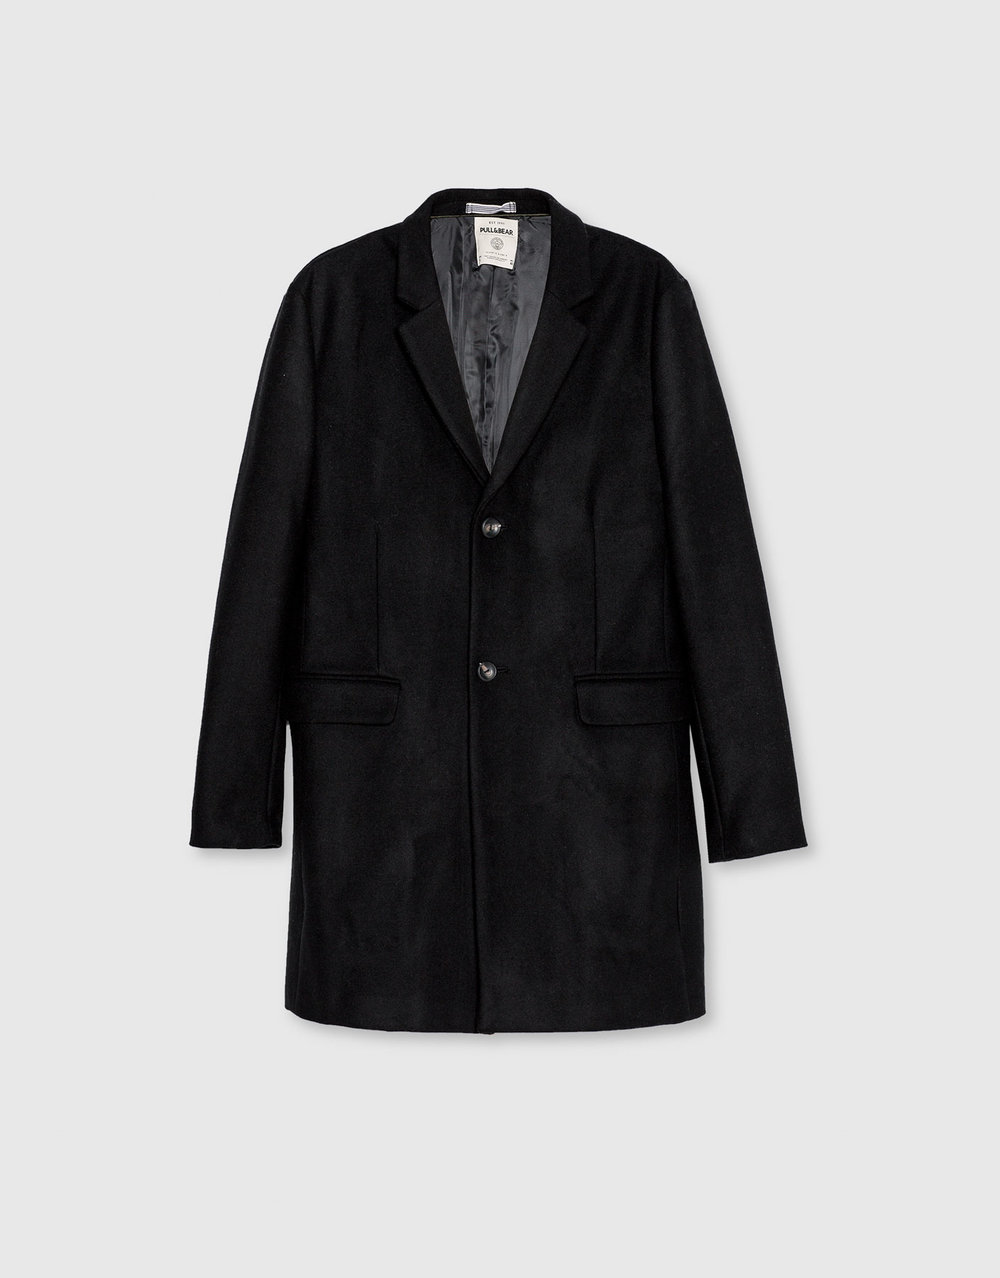 Basic wool coat, £69.99 ( pullandbear.com )